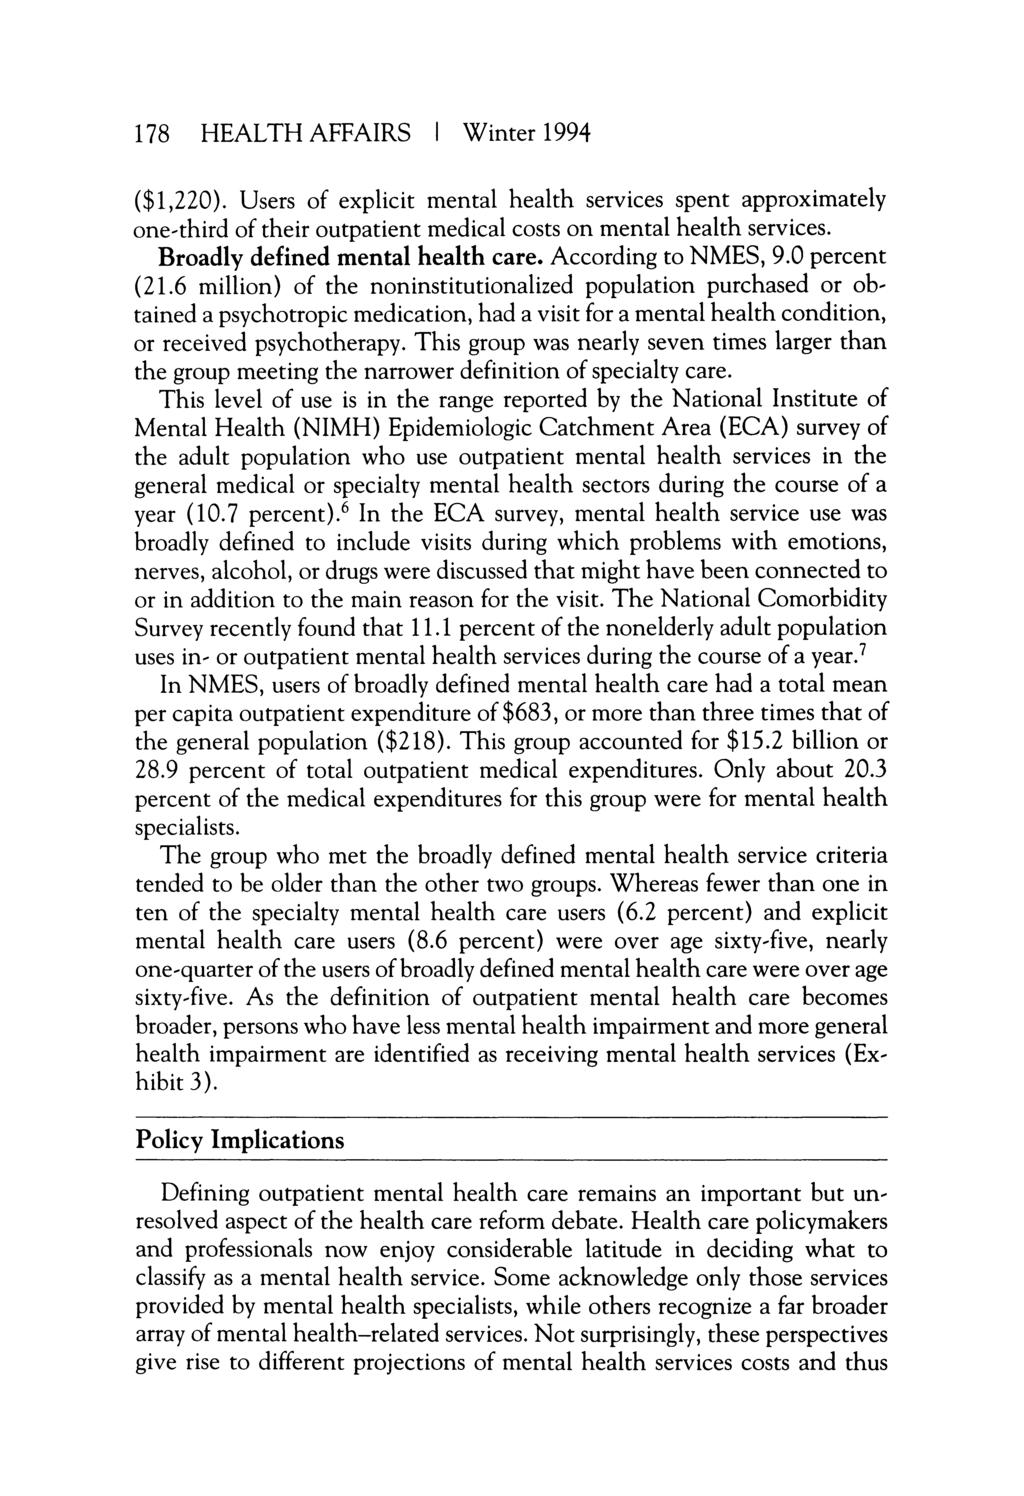 178 HEALTH AFFAIRS Winter 1994 ($1,220). Users of explicit mental health services spent approximately one-third of their outpatient medical costs on mental health services.